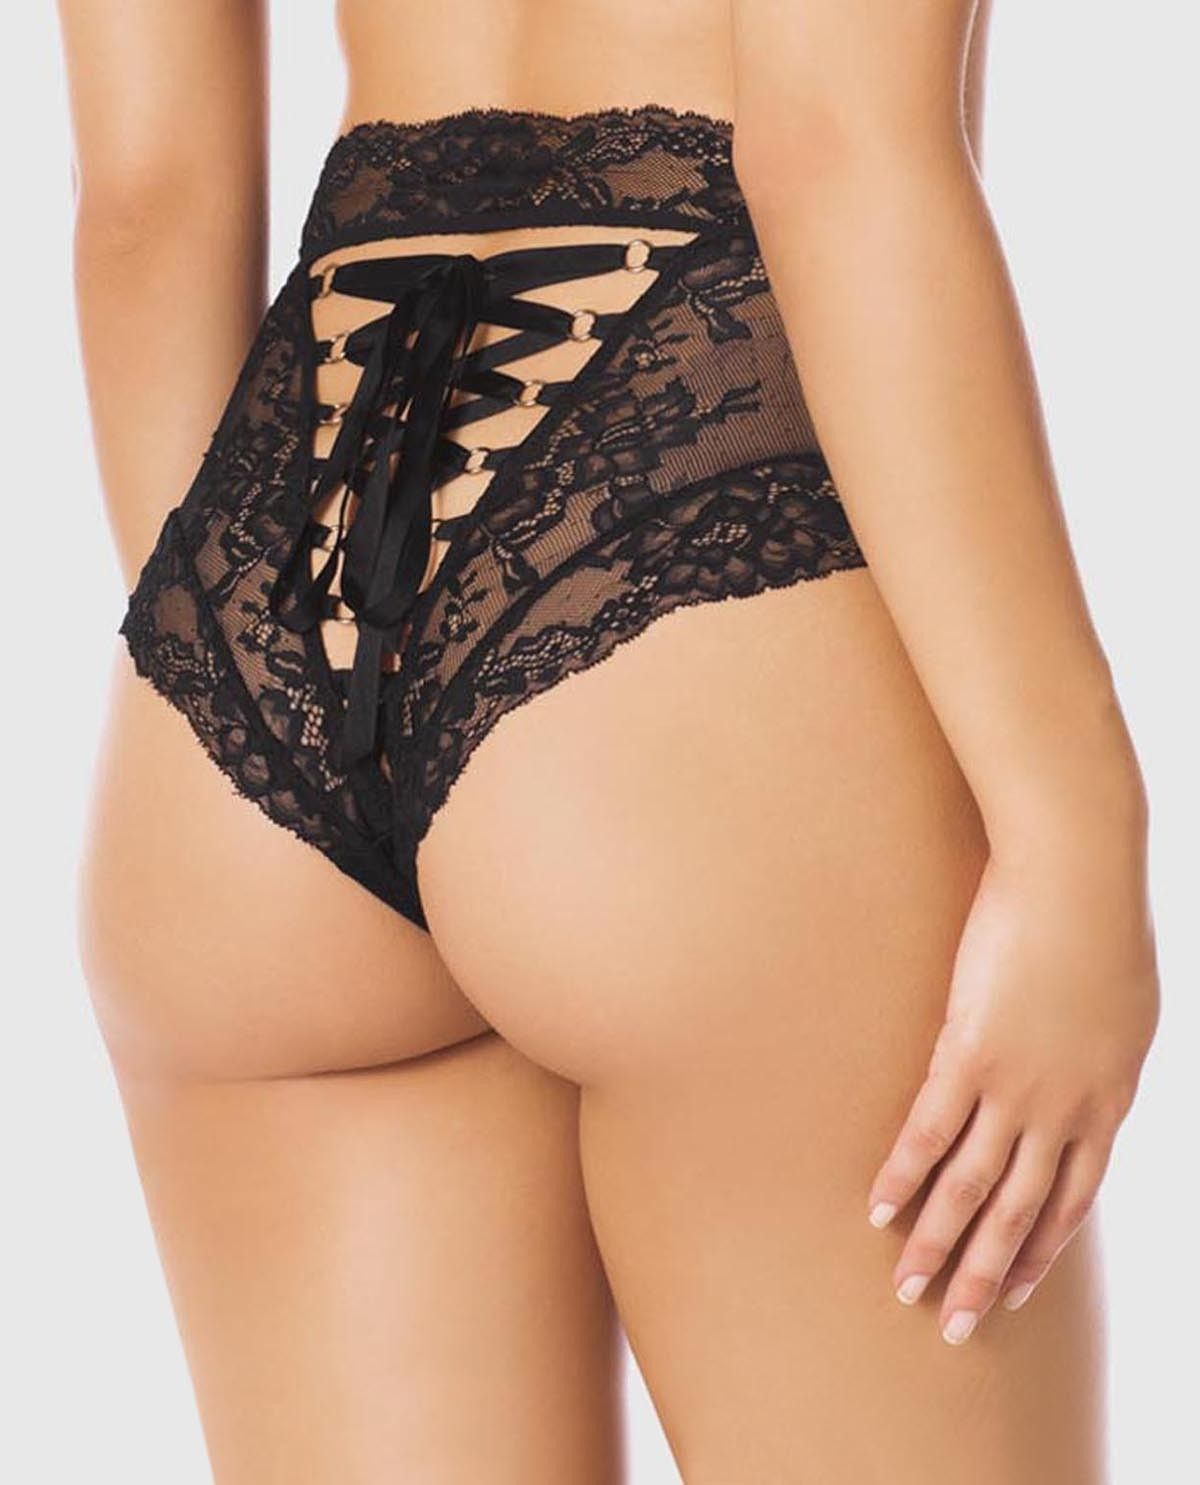 d59bc7351e2 Show off in this super-hot panty! With a high waist fit